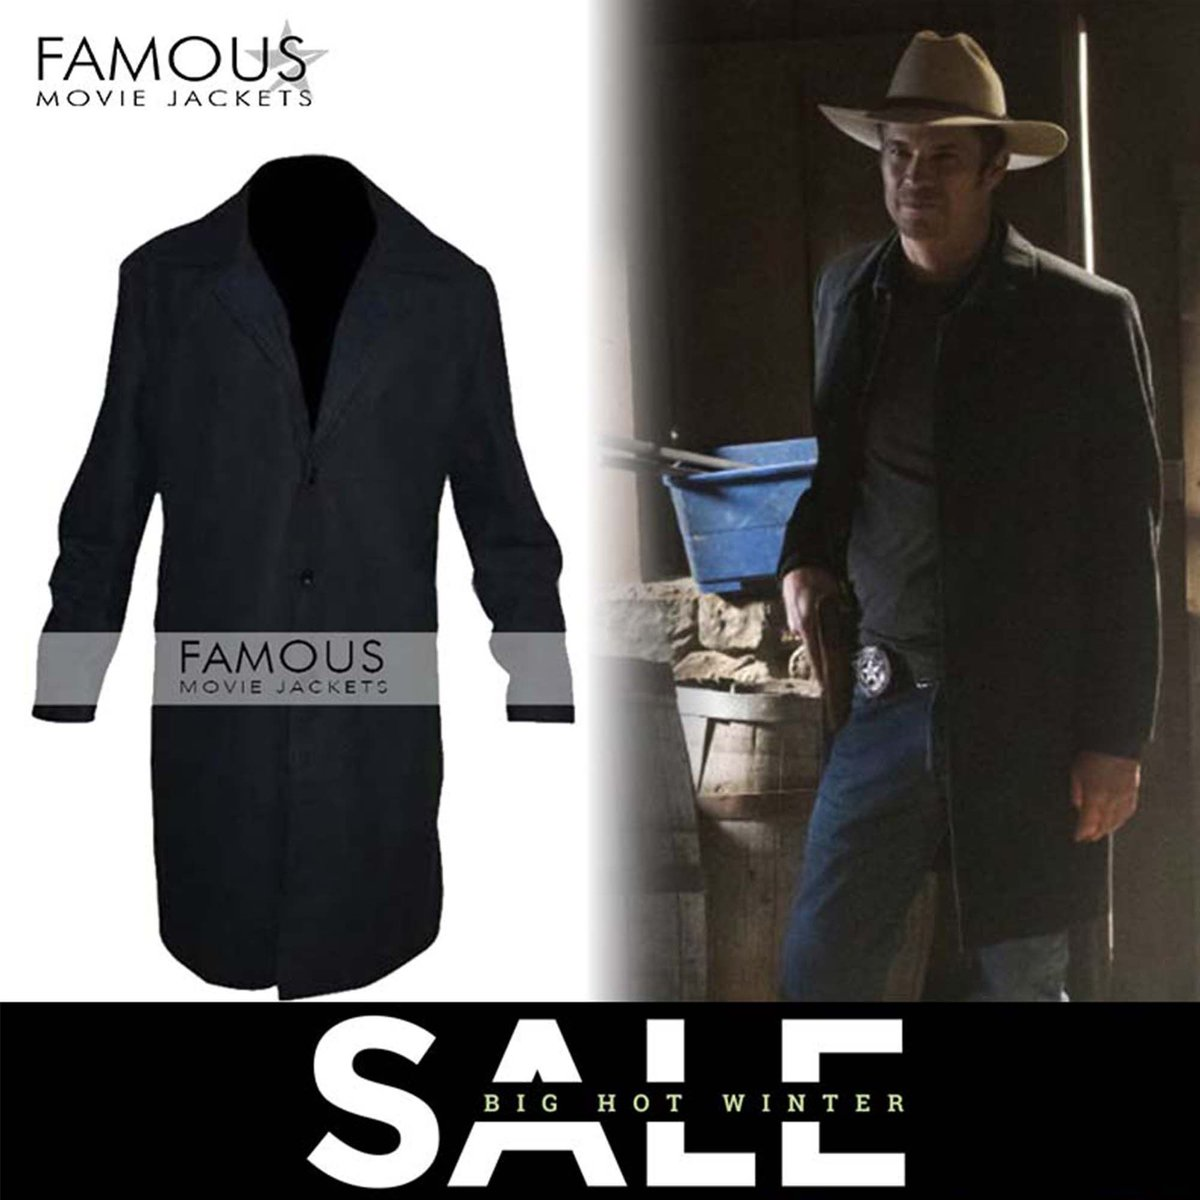 Make your own way wearing this super stylish and cool Justified Timothy Olyphant (Raylan) Trench Coat Jacket. For more styles and offers visit us: https://buff.ly/33xCX4t #Celebrities #CelebsJackets #famousmoviejackets #timothyolyphant #trenchCoat #raylan #fashion #outfit #tyle